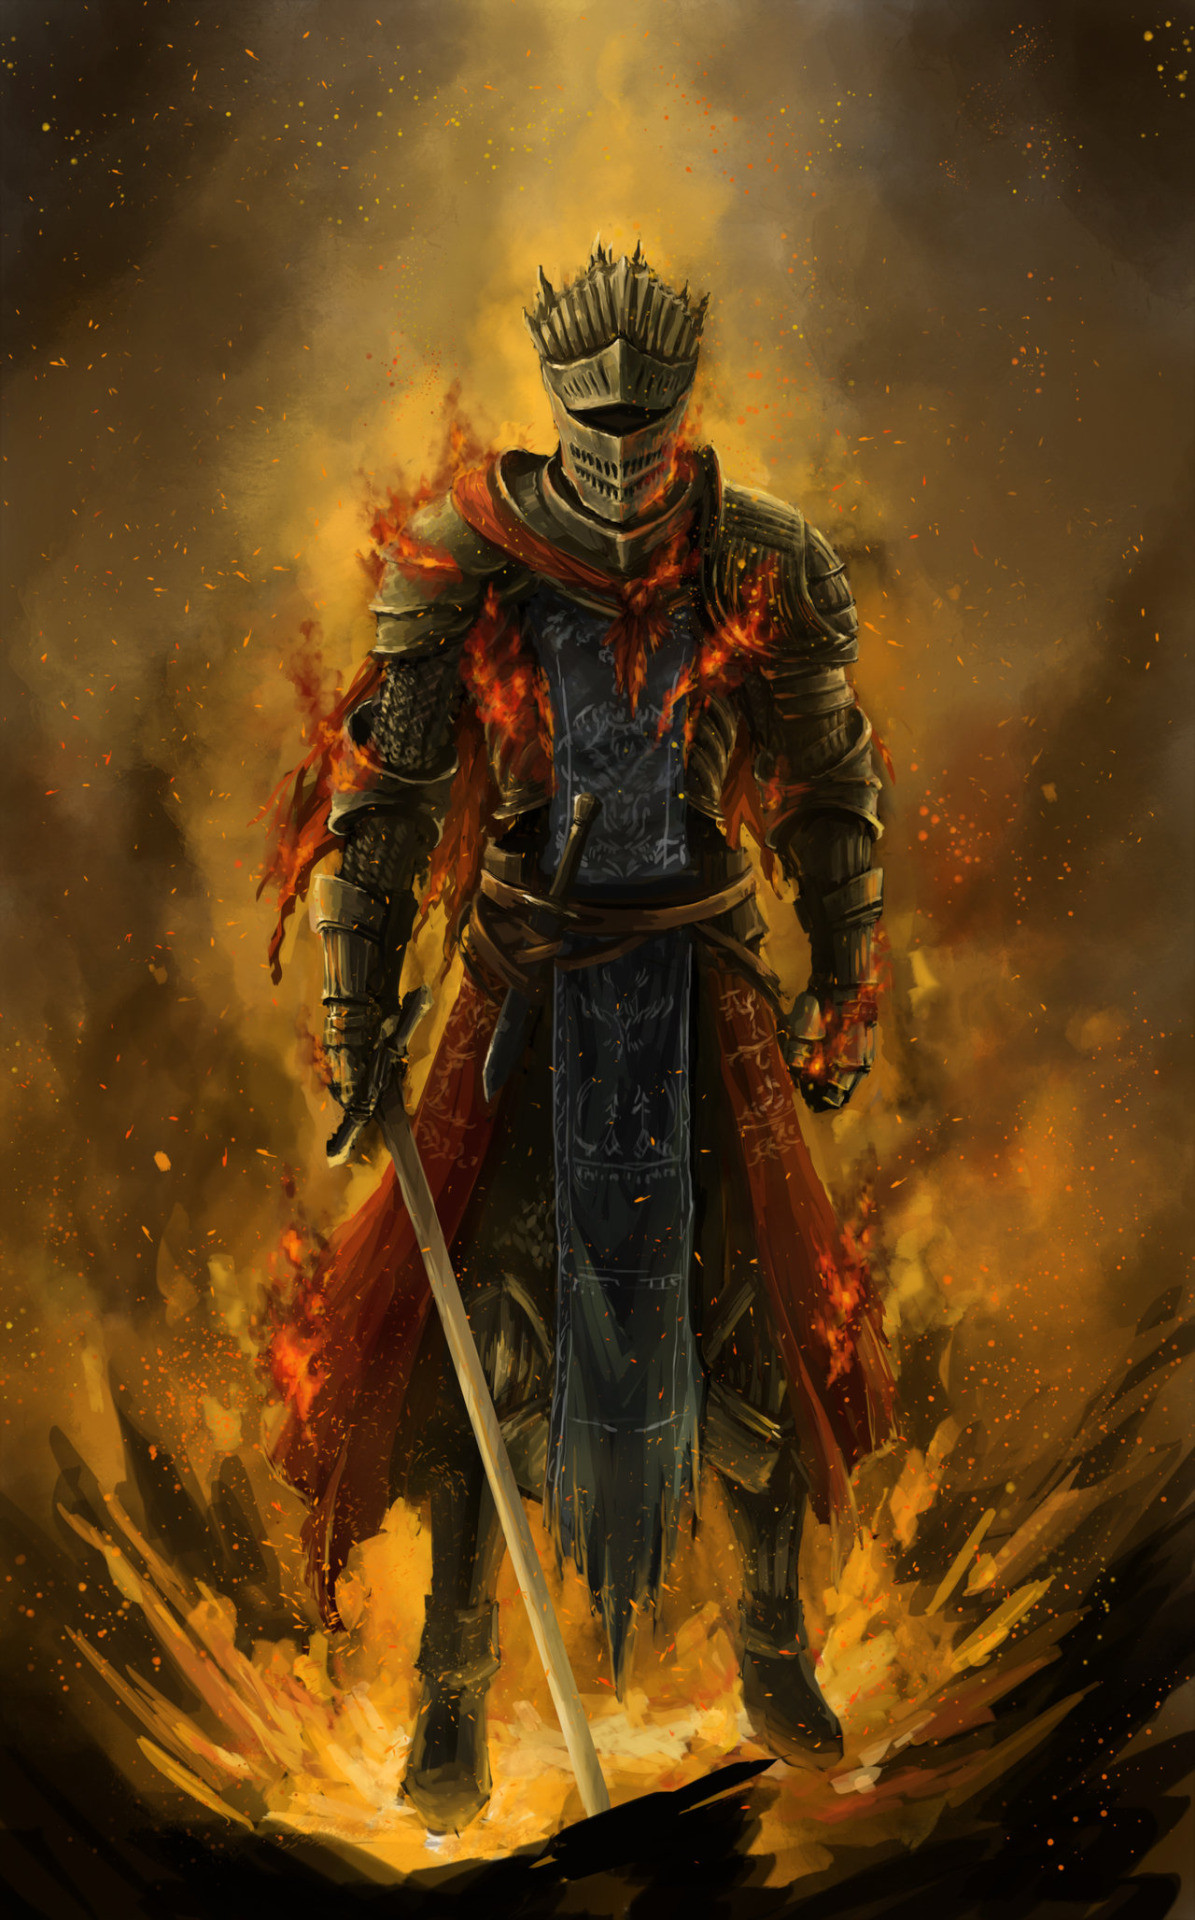 2560x1080 Preview Wallpaper Dark Souls Ii Warrior Knight From Software